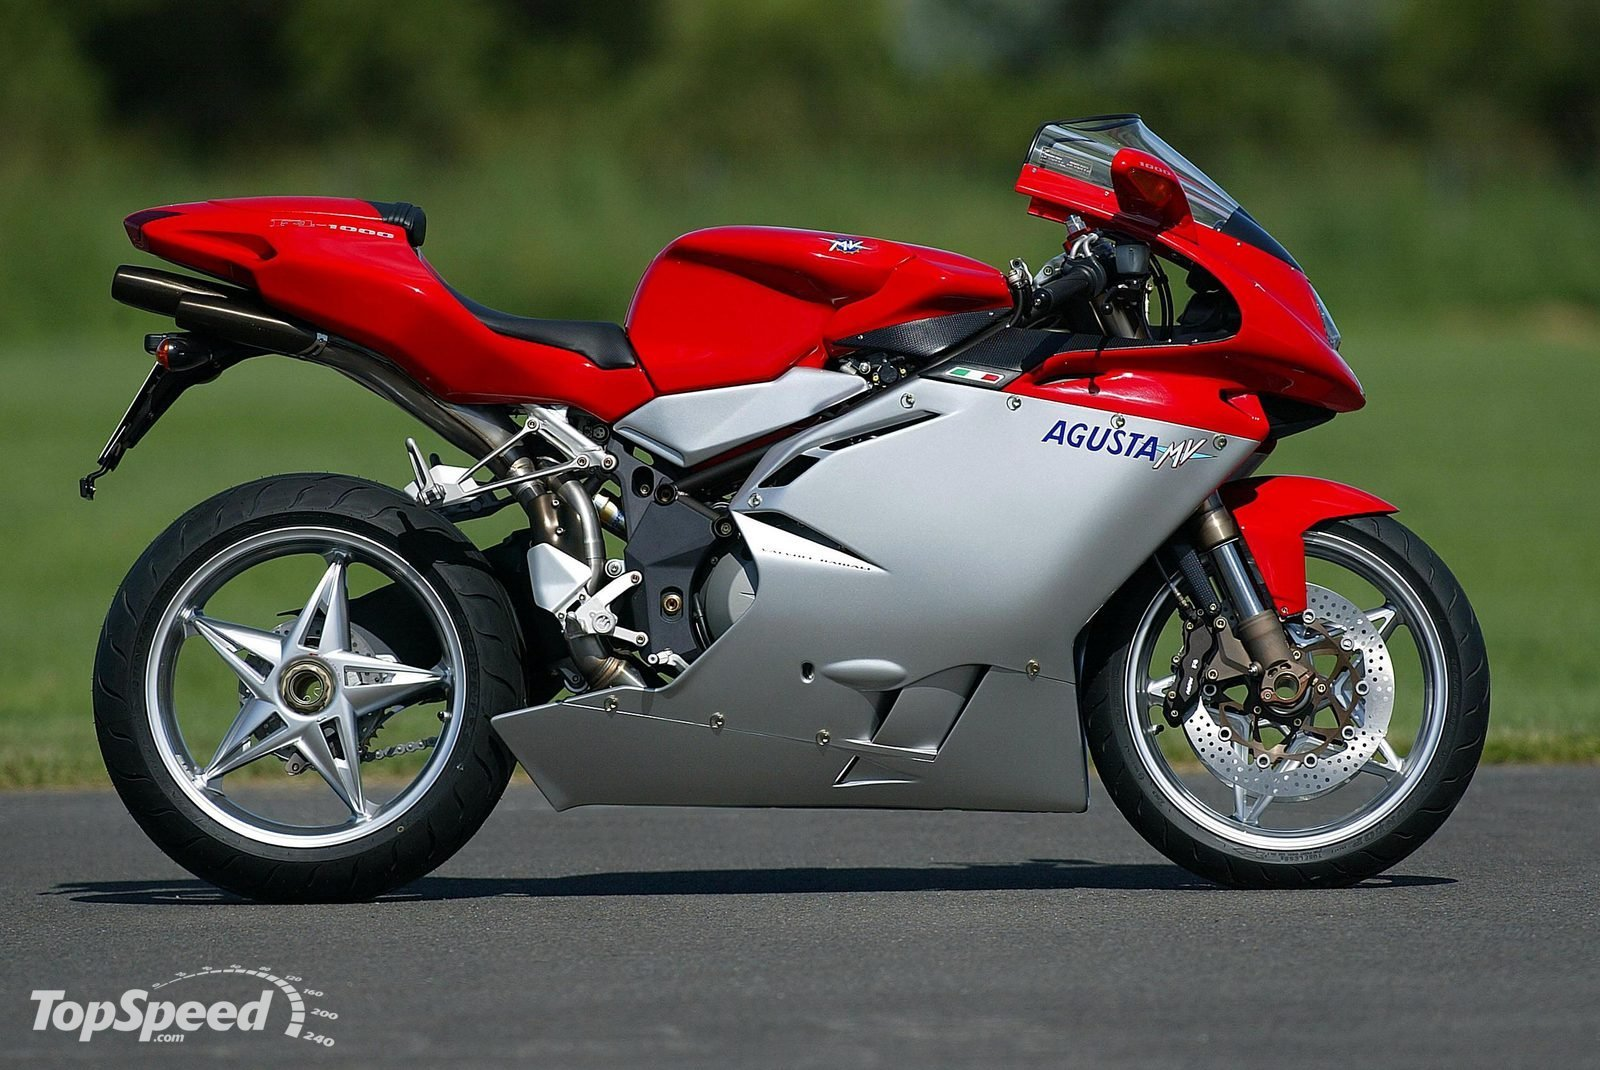 MV Agusta F4 750 S 2006 images #117515